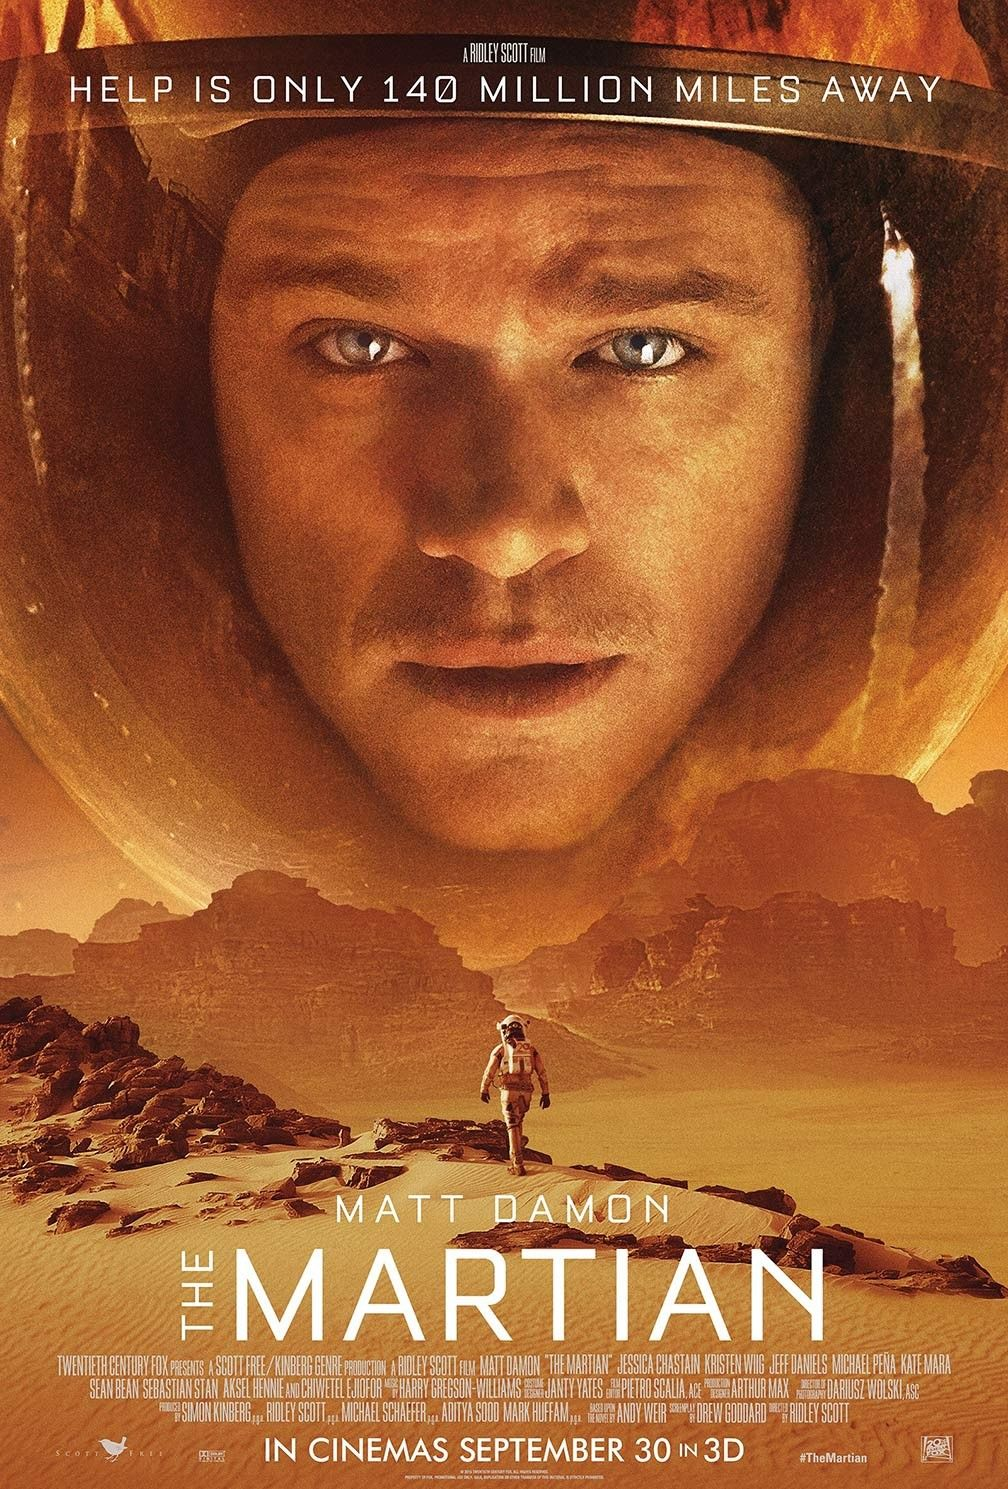 Pin By Tugba On Movie Posters The Martian Film Movie Posters Space Movies